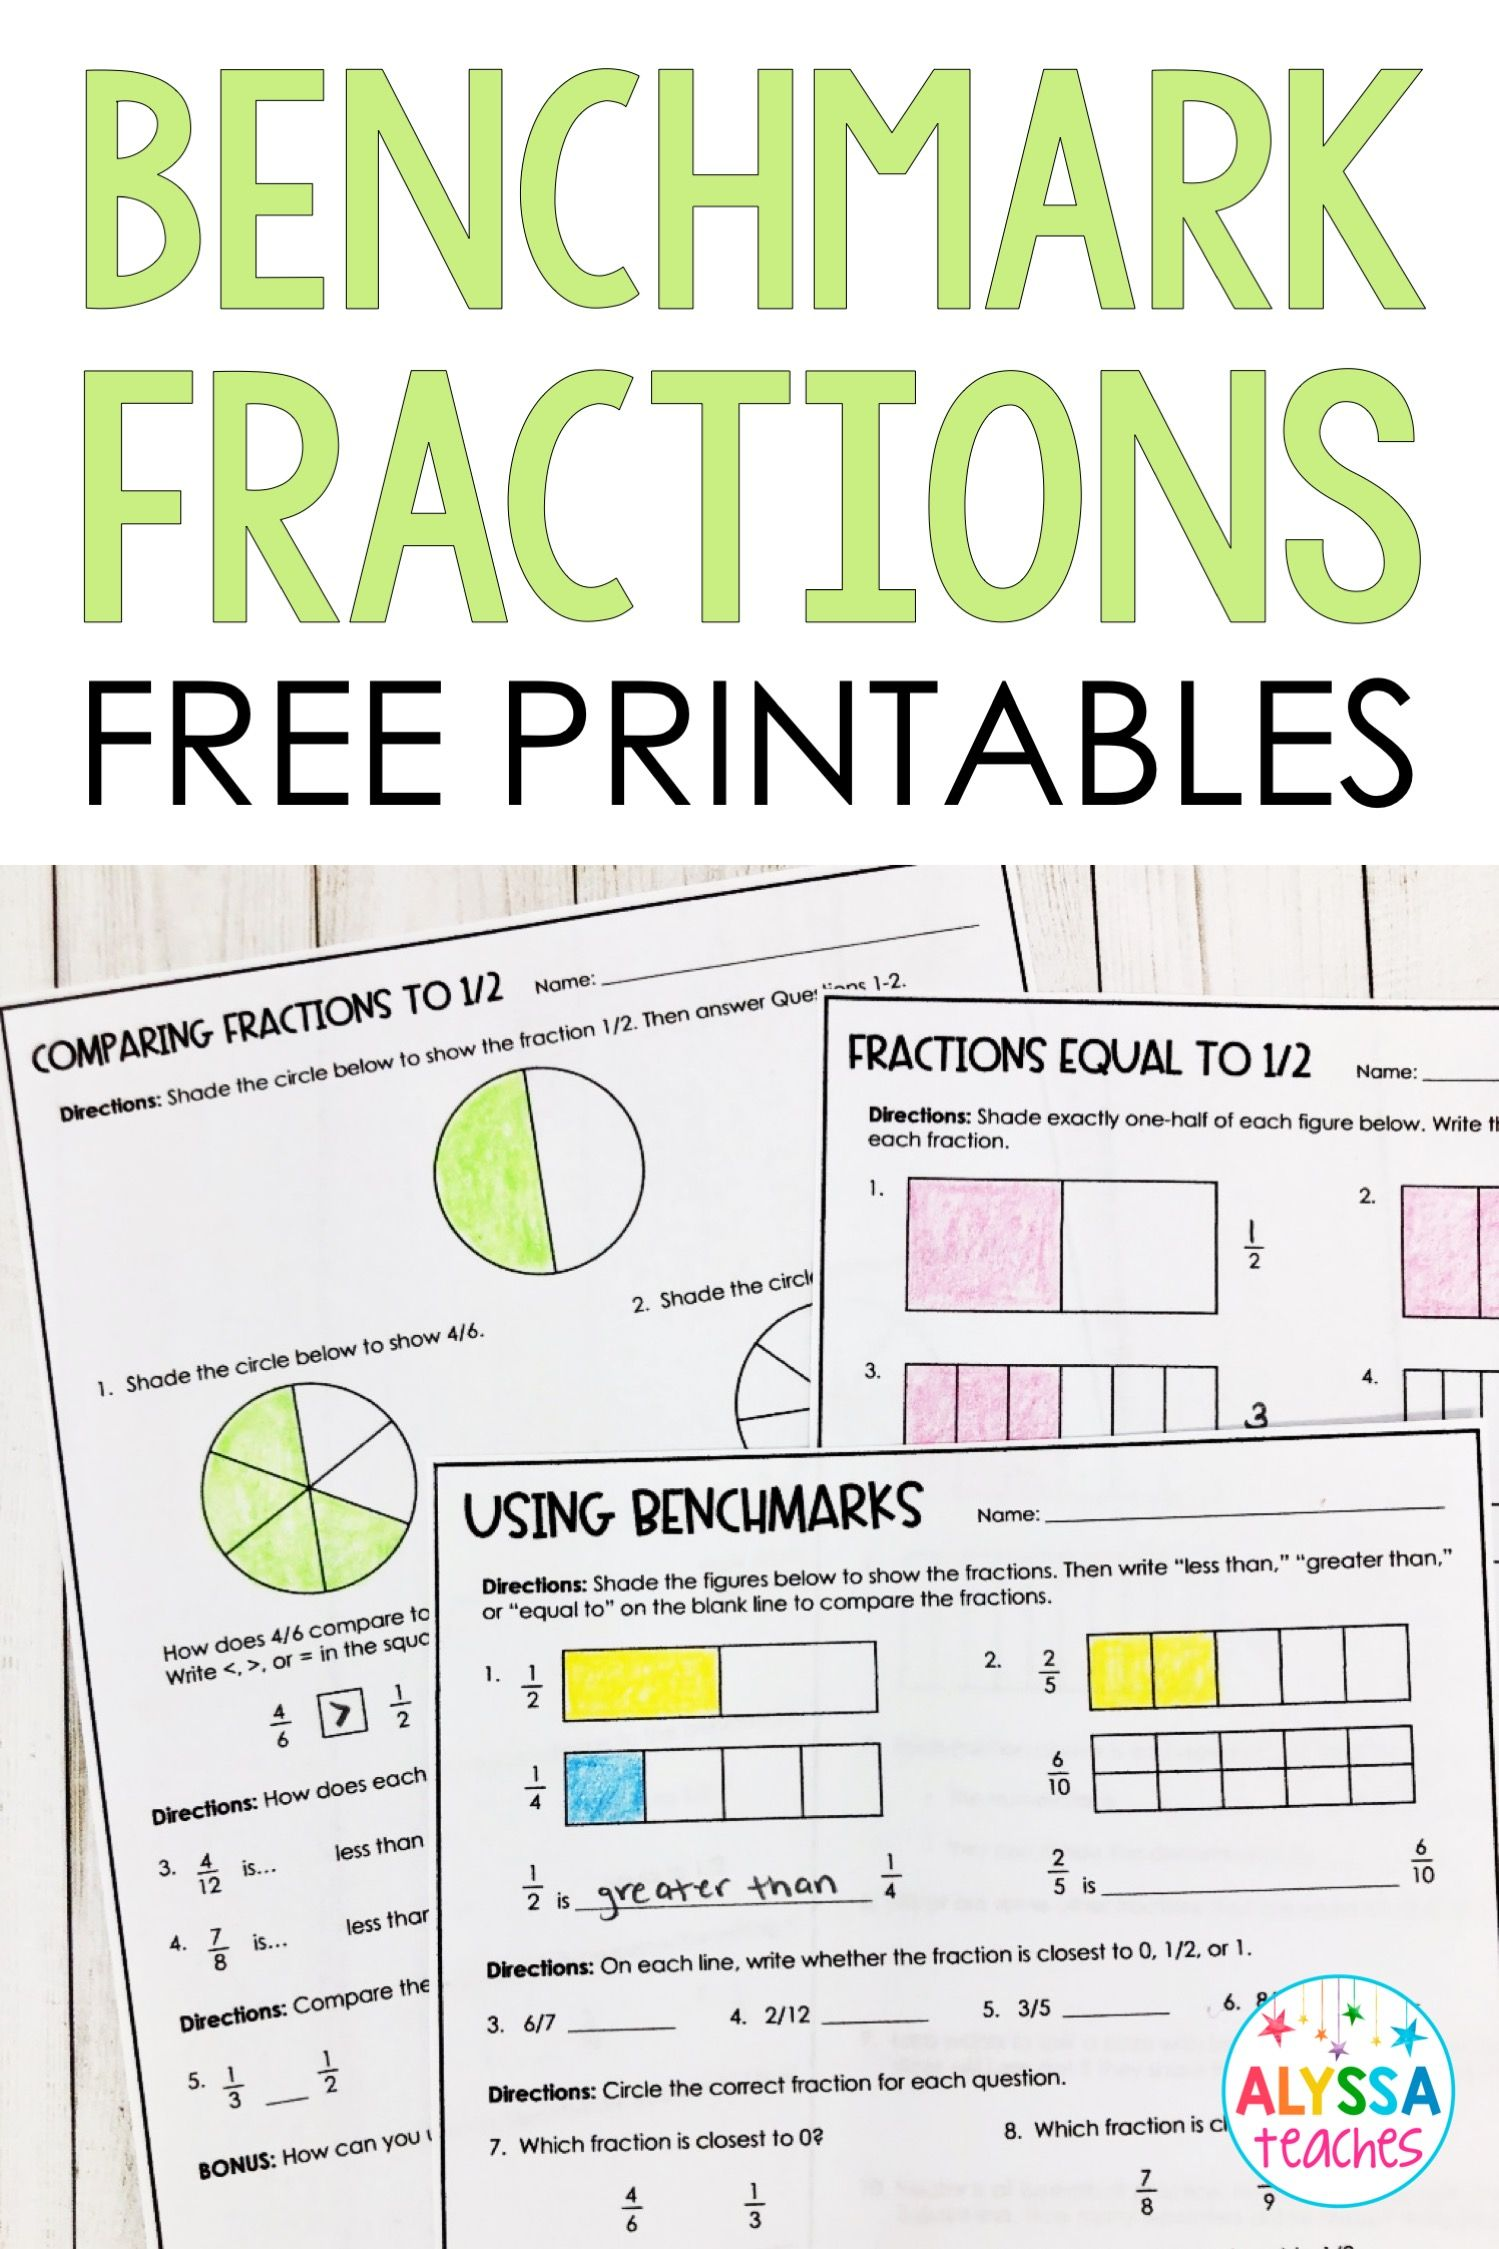 Comparing Fraction With Pictures Worksheet Printable